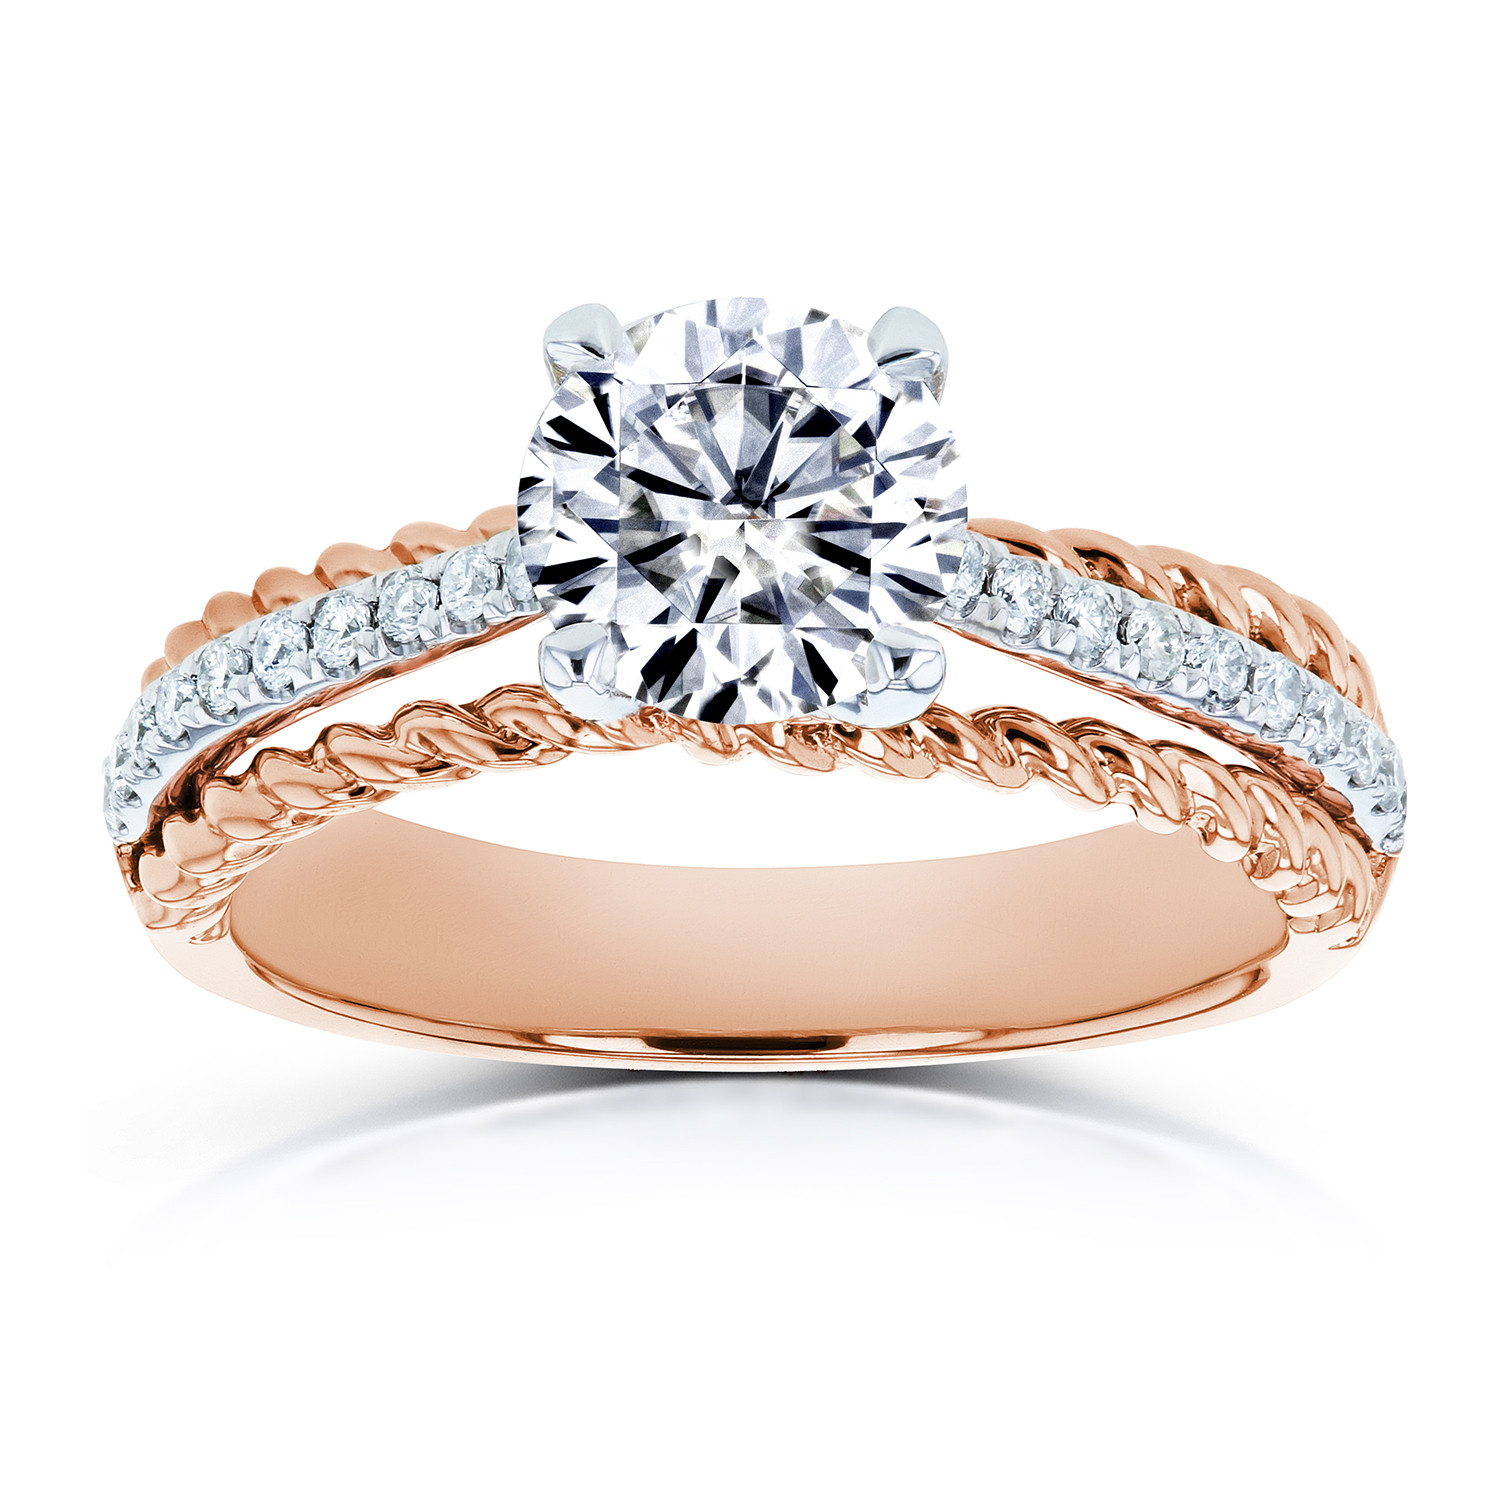 rings an style engagement earn whiteview diamond to ring or login tiffany account round solitaire solitare points cut create